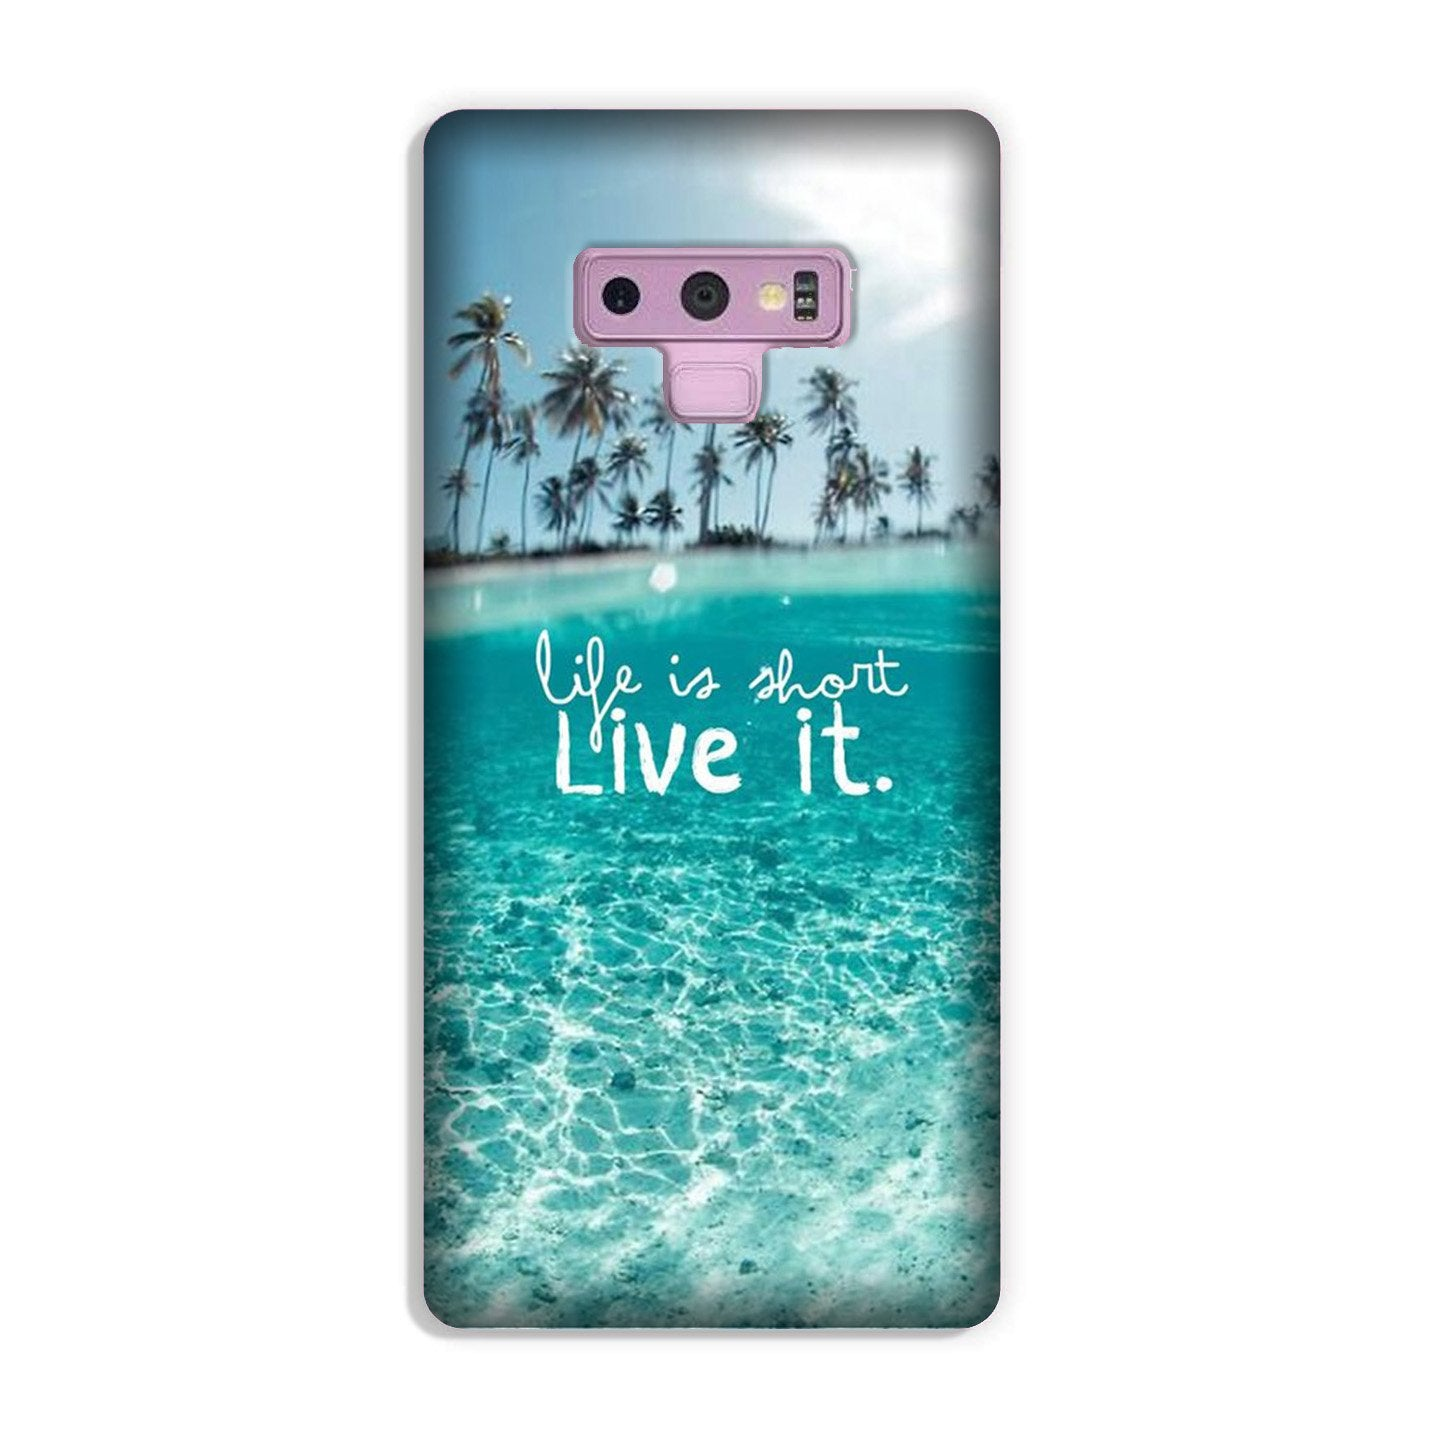 Life is short live it Case for Galaxy Note 9